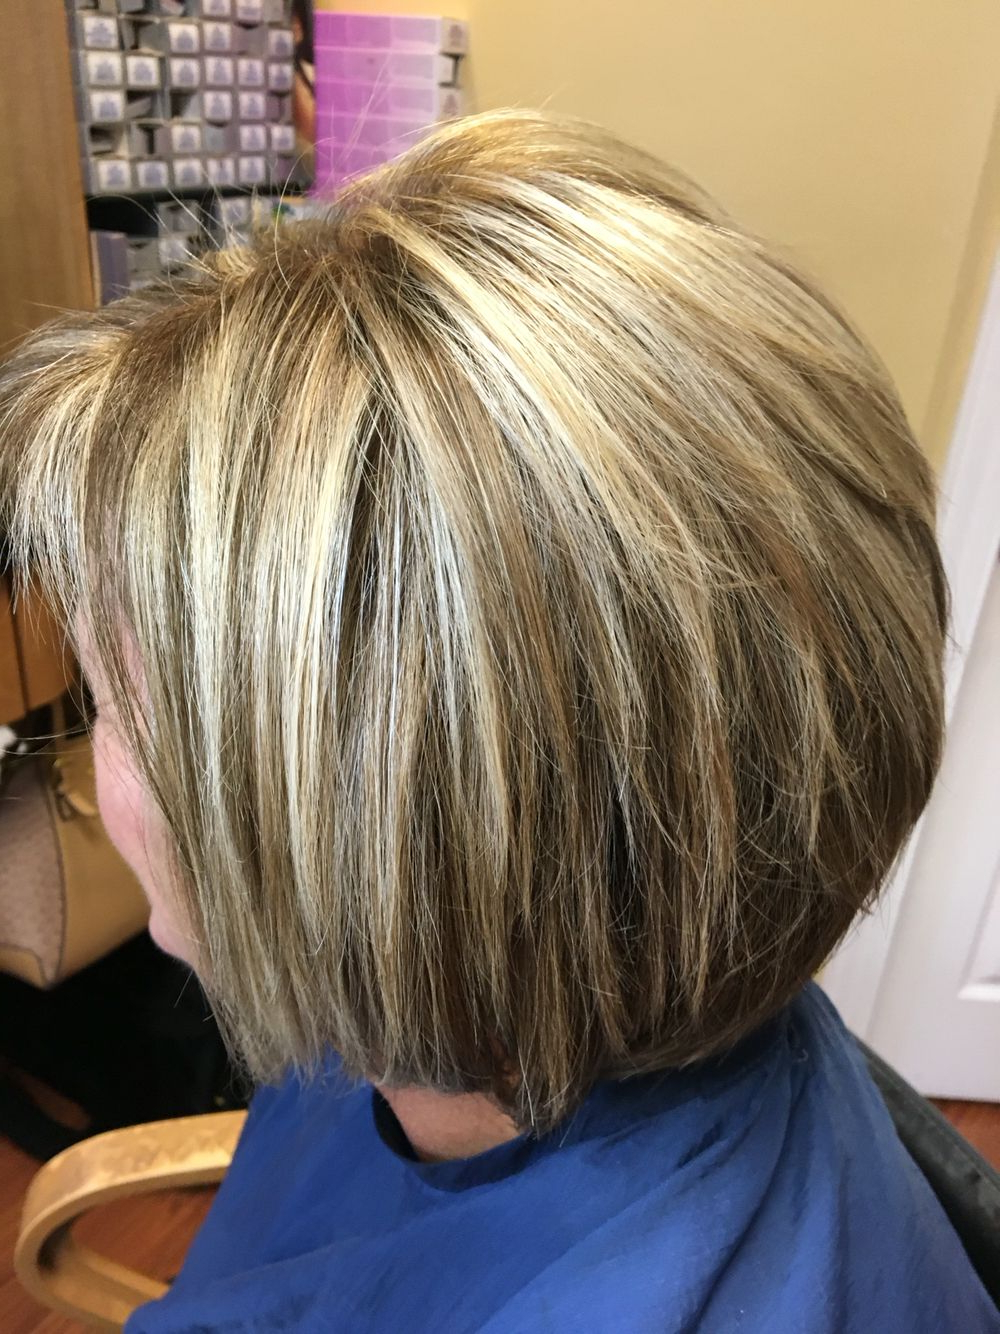 Blonde Highlights And Lowlights For This Short Hair Cut And Style In Short Ruffled Hairstyles With Blonde Highlights (View 5 of 20)